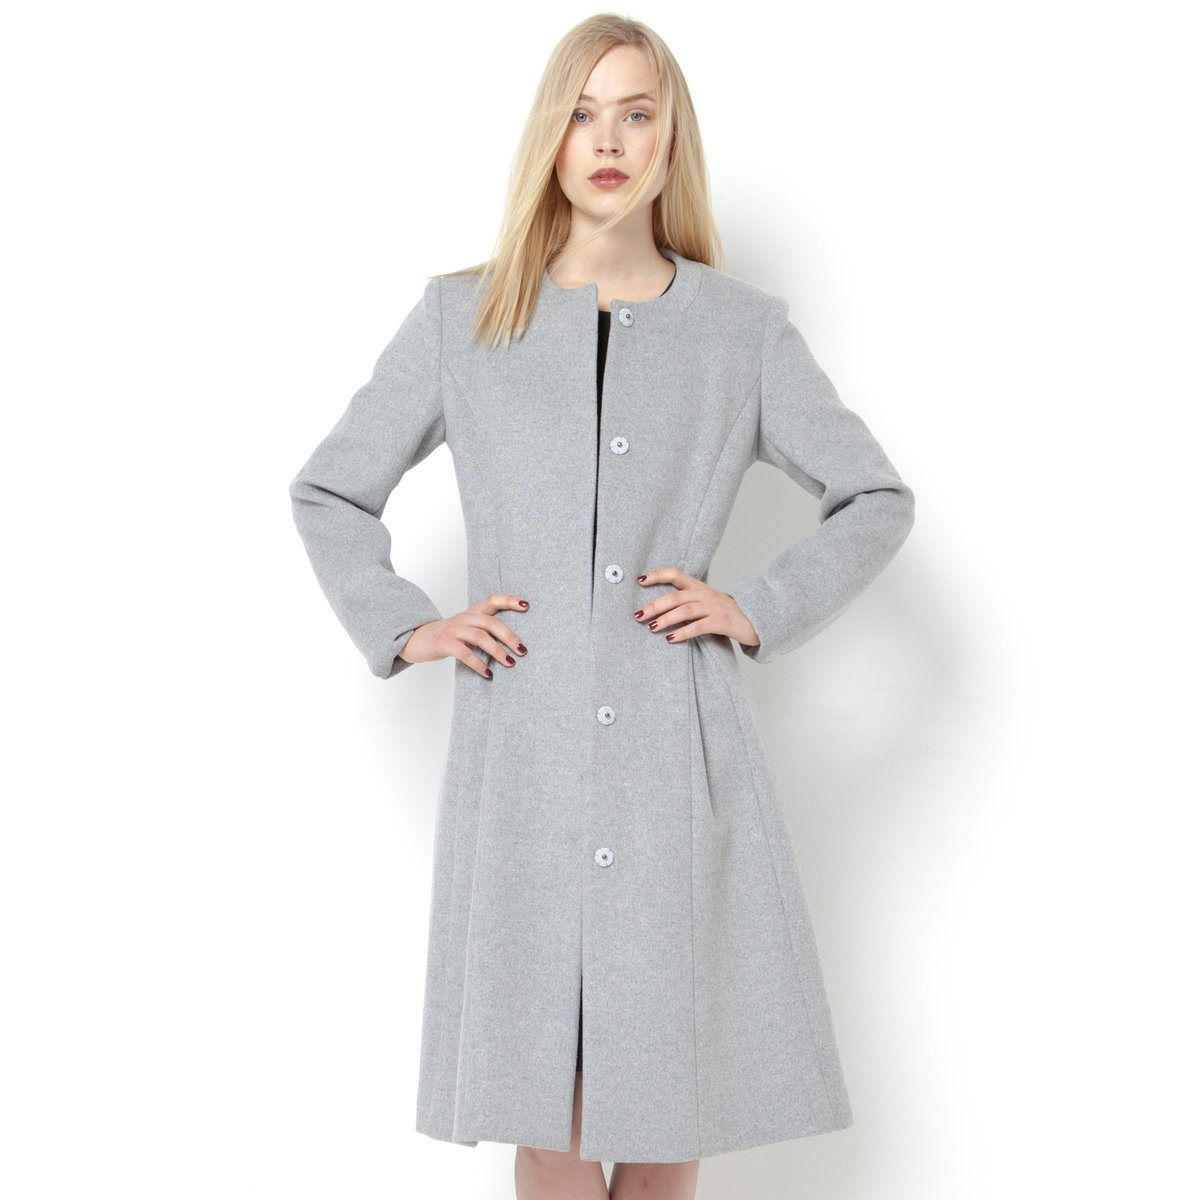 Pale grey 50% wool fitted overcoat